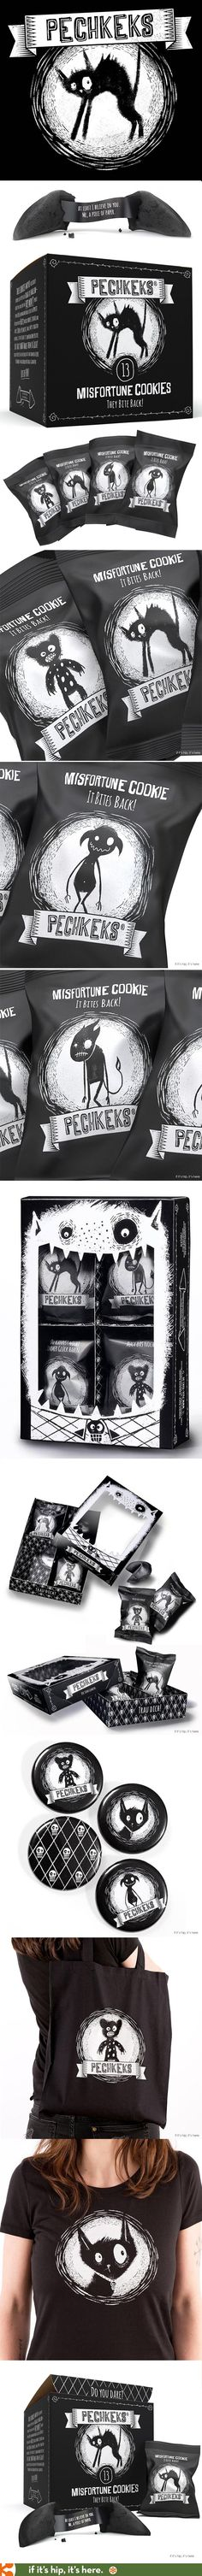 Dark Cookies with a Dark Sense of Humor (and Great Branding and Package Design)